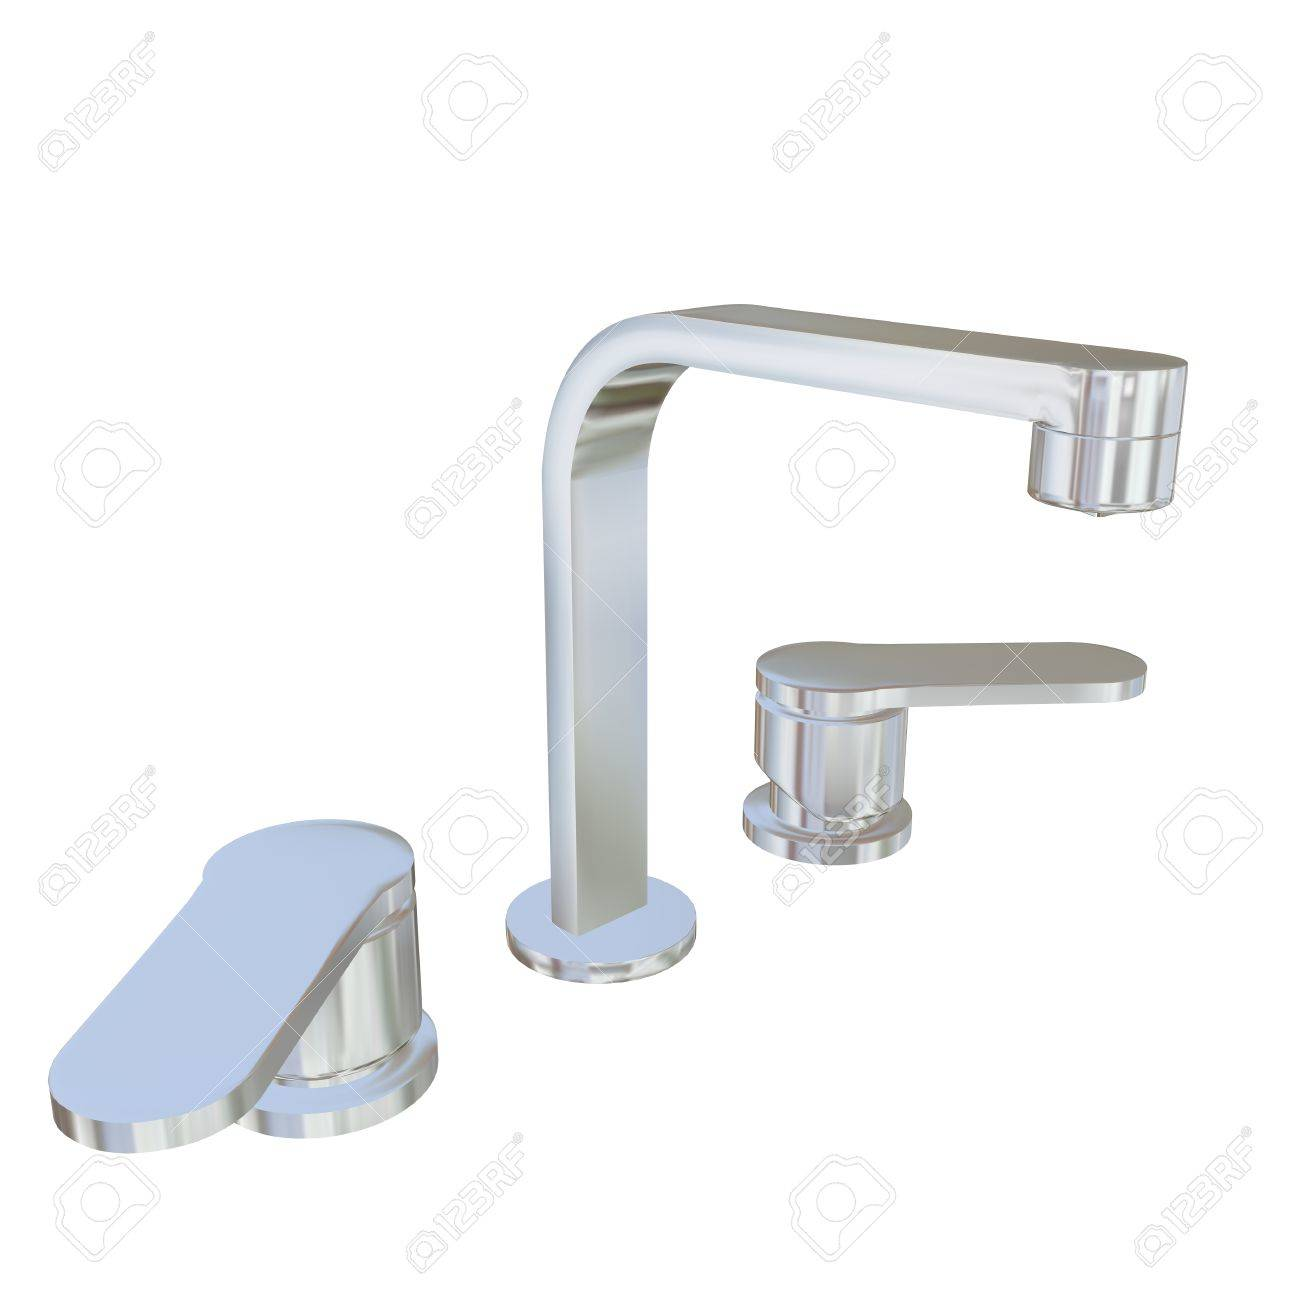 Modern Faucet With Chrome Or Stainless Steel Finishing, 3d ...